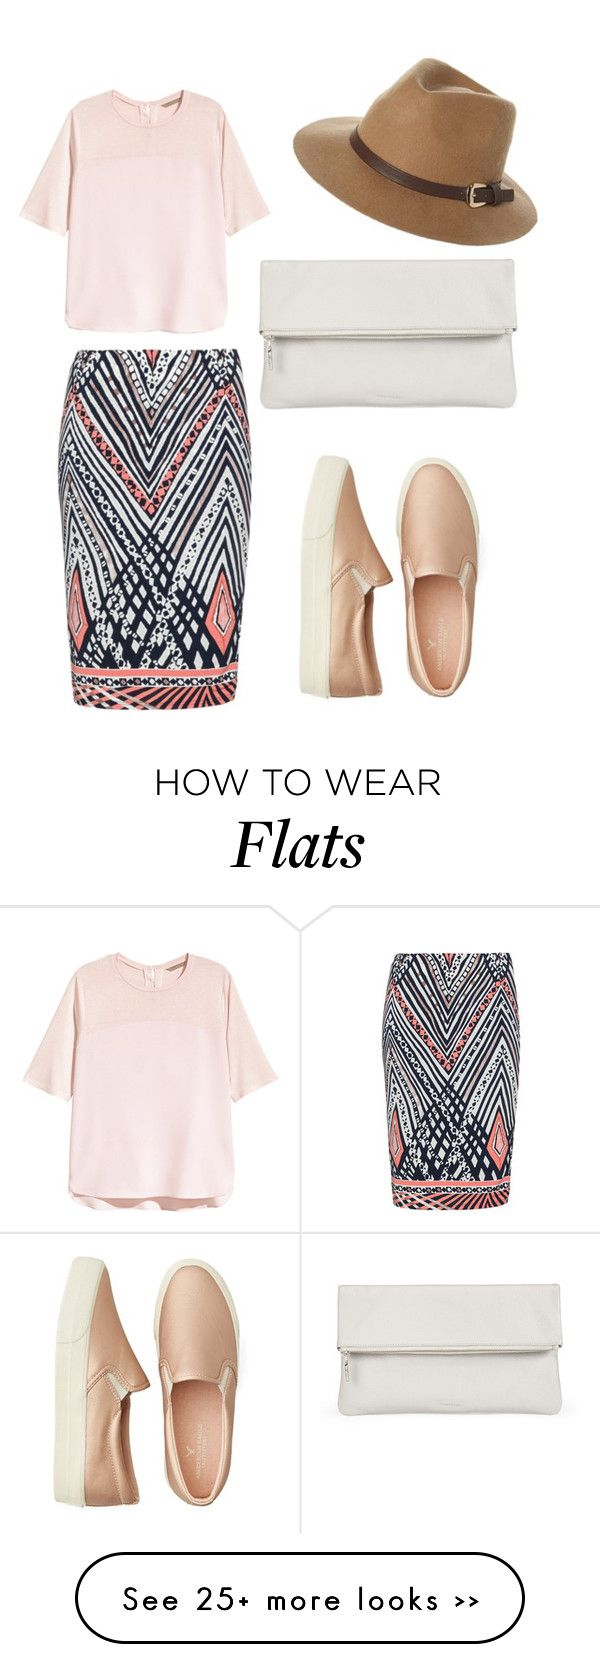 """""""sneakers and flats"""" by devonkathleenallen on Polyvore featuring moda, American Eagle Outfitters, Anna Scholz, H&M, Rusty y Whistles"""